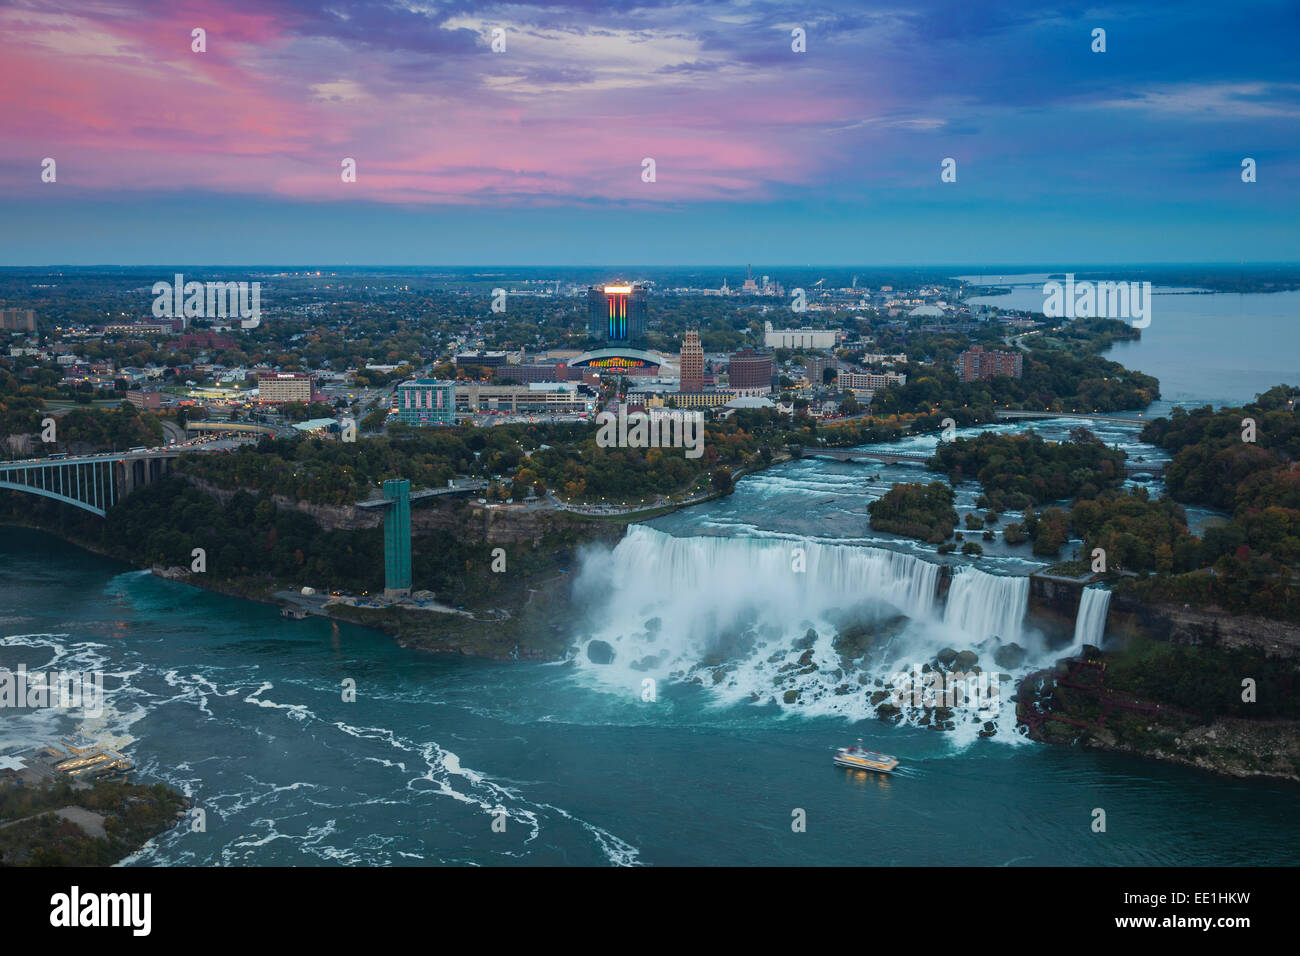 View of Rainbow Bridge and The American Falls, Niagara Falls, Niagara, border of New York State, and Ontario Canada - Stock Image